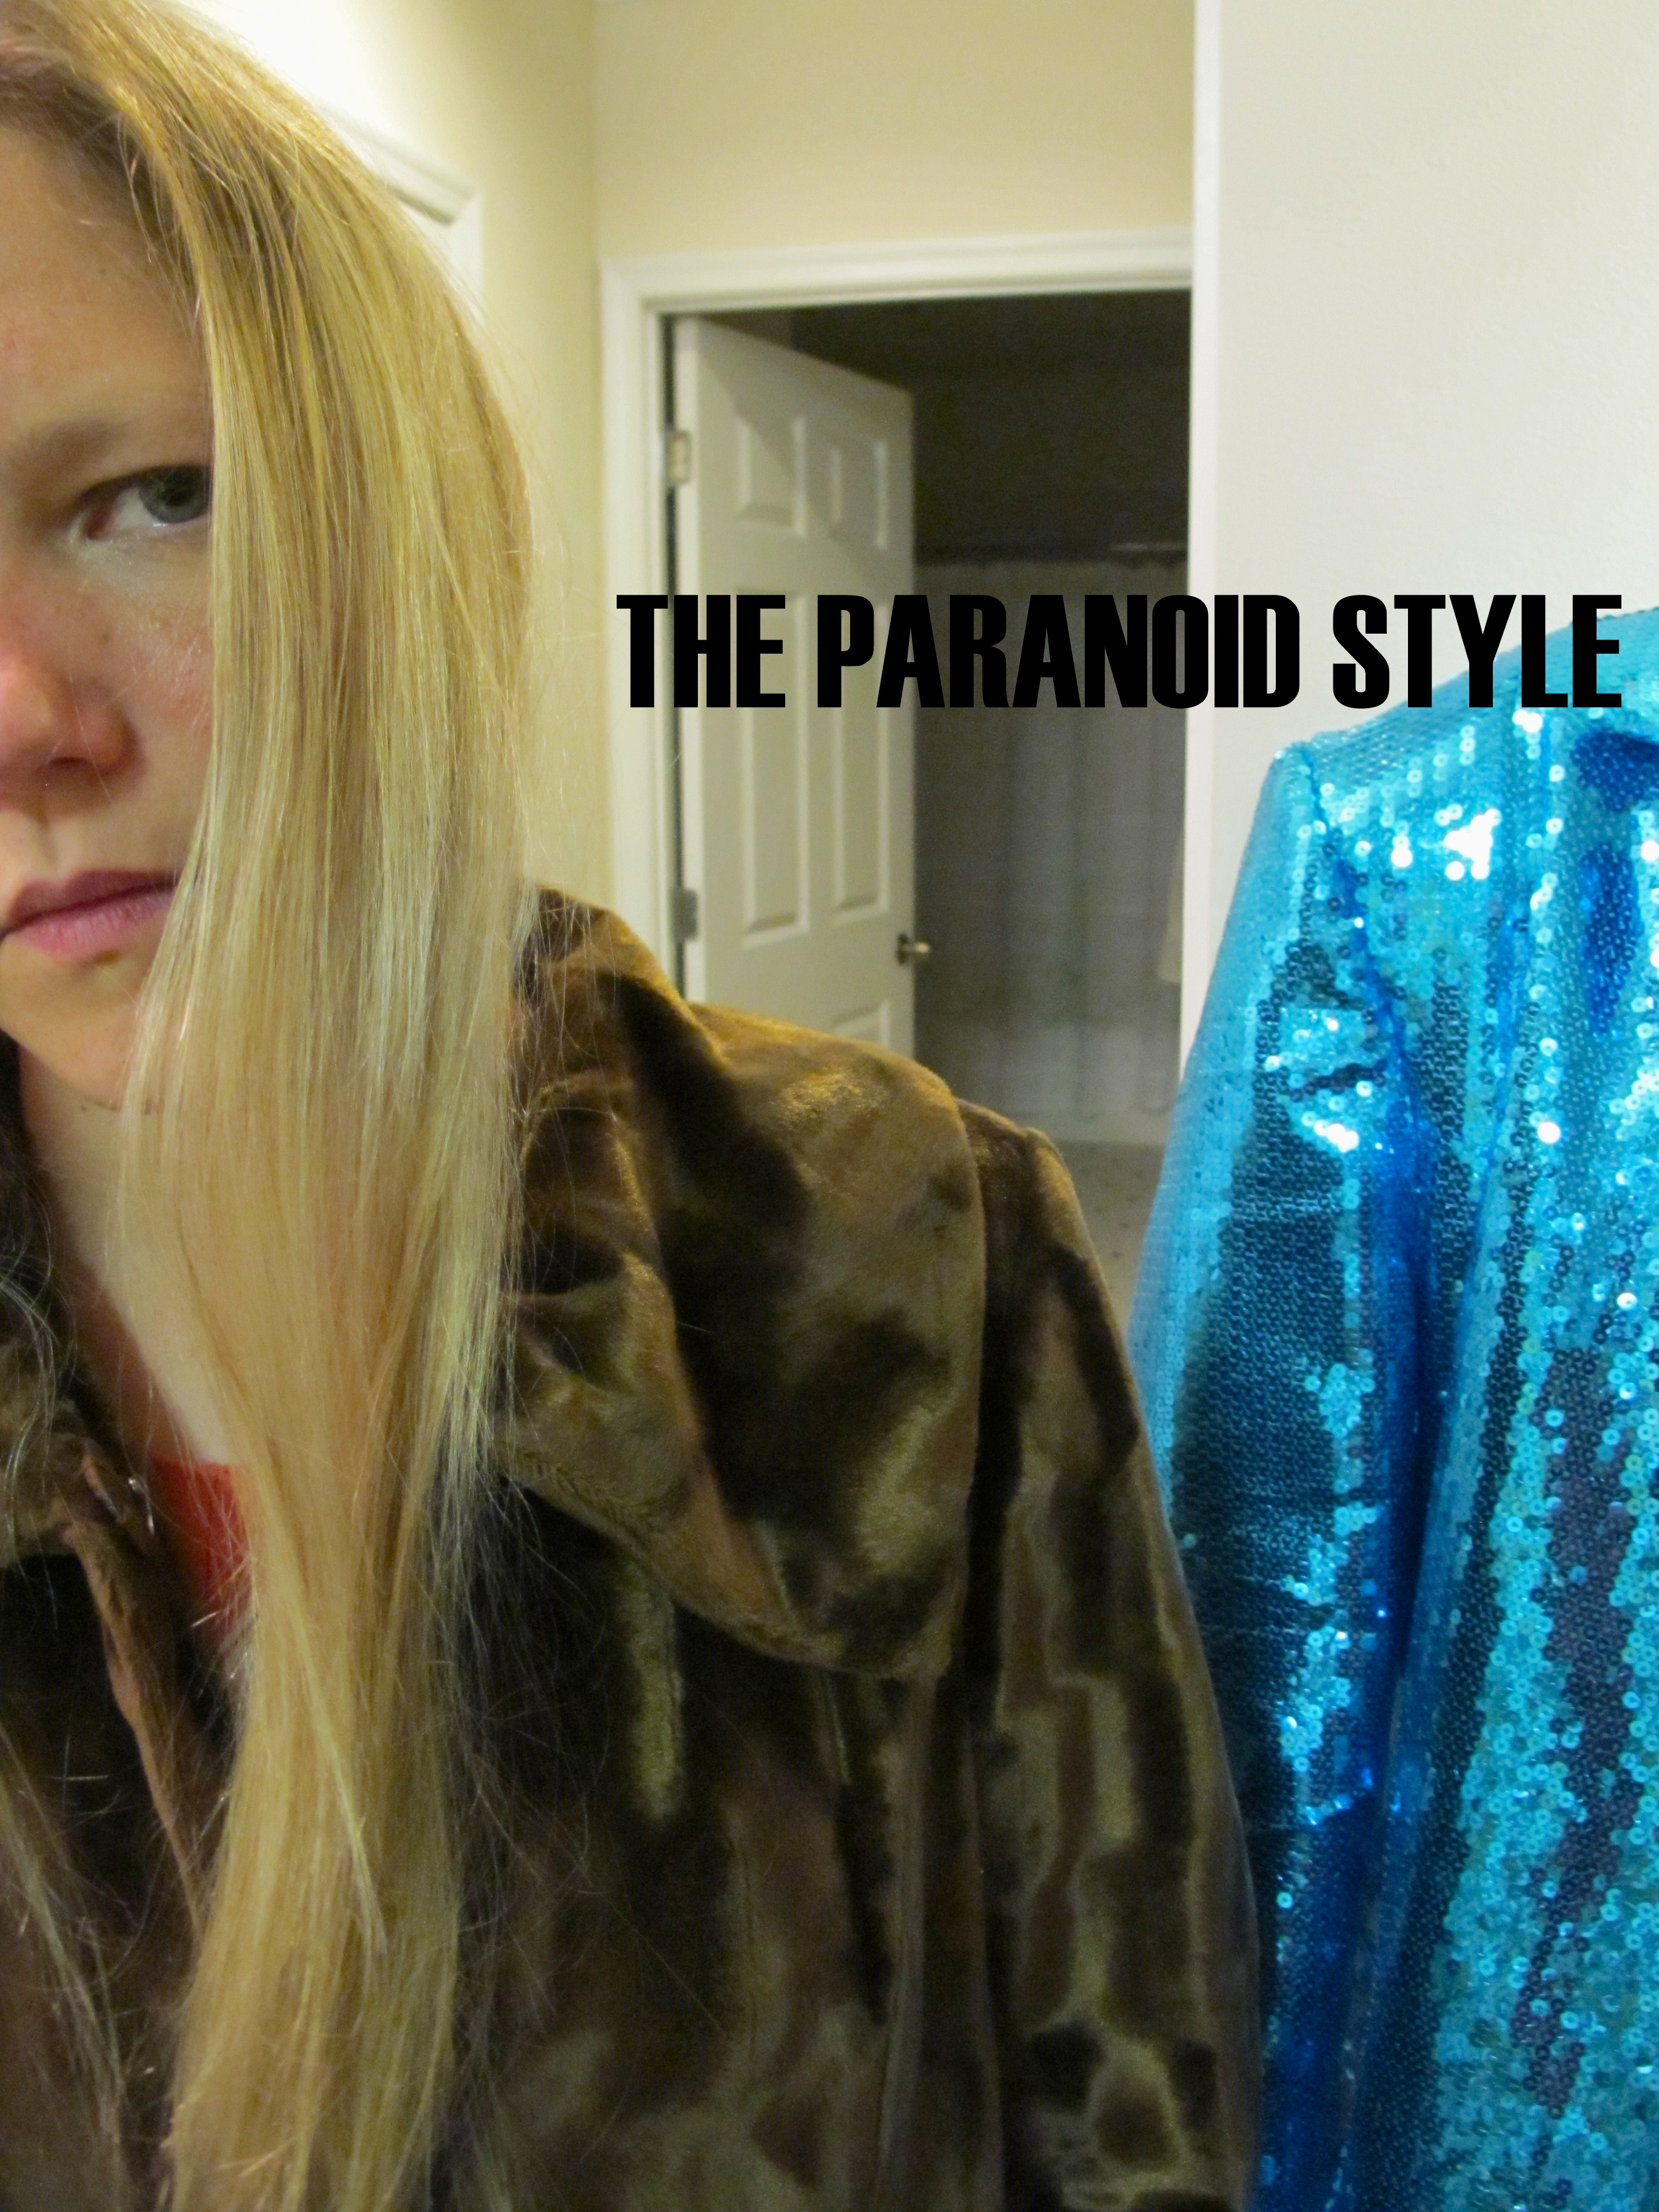 The Paranoid Style